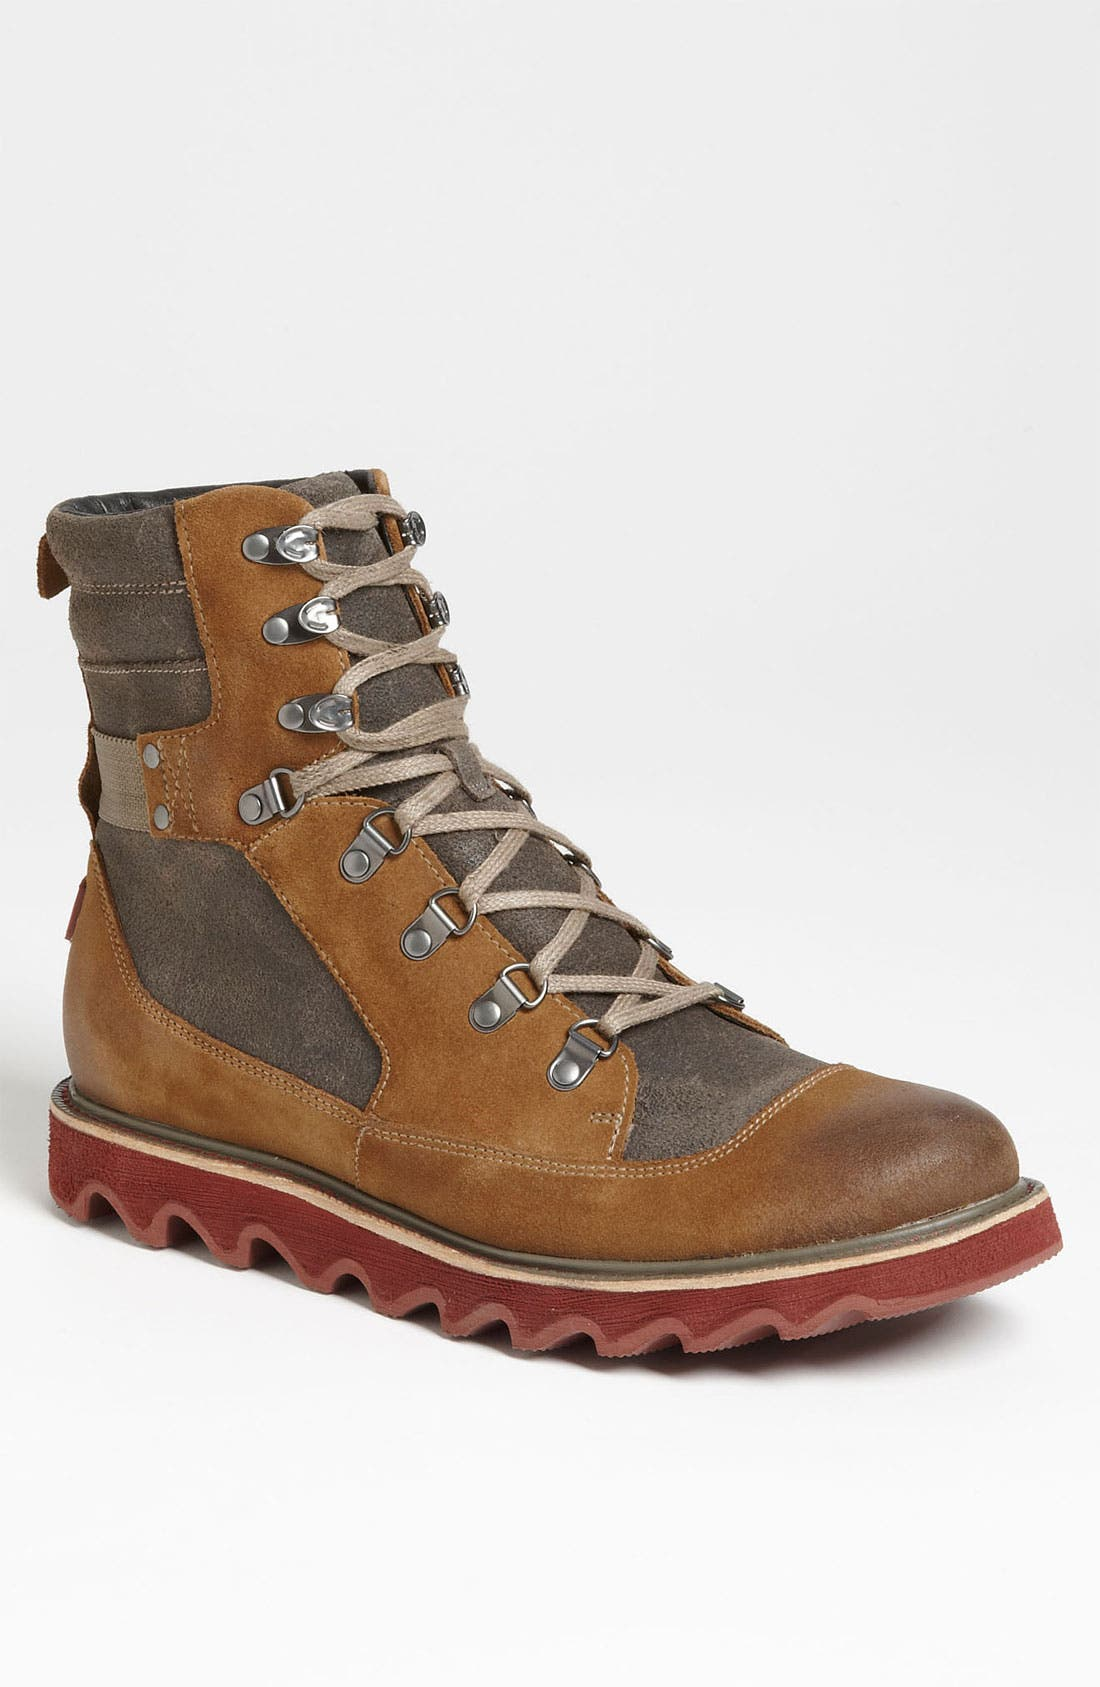 Main Image - SOREL 'Mad Mukluk' Boot